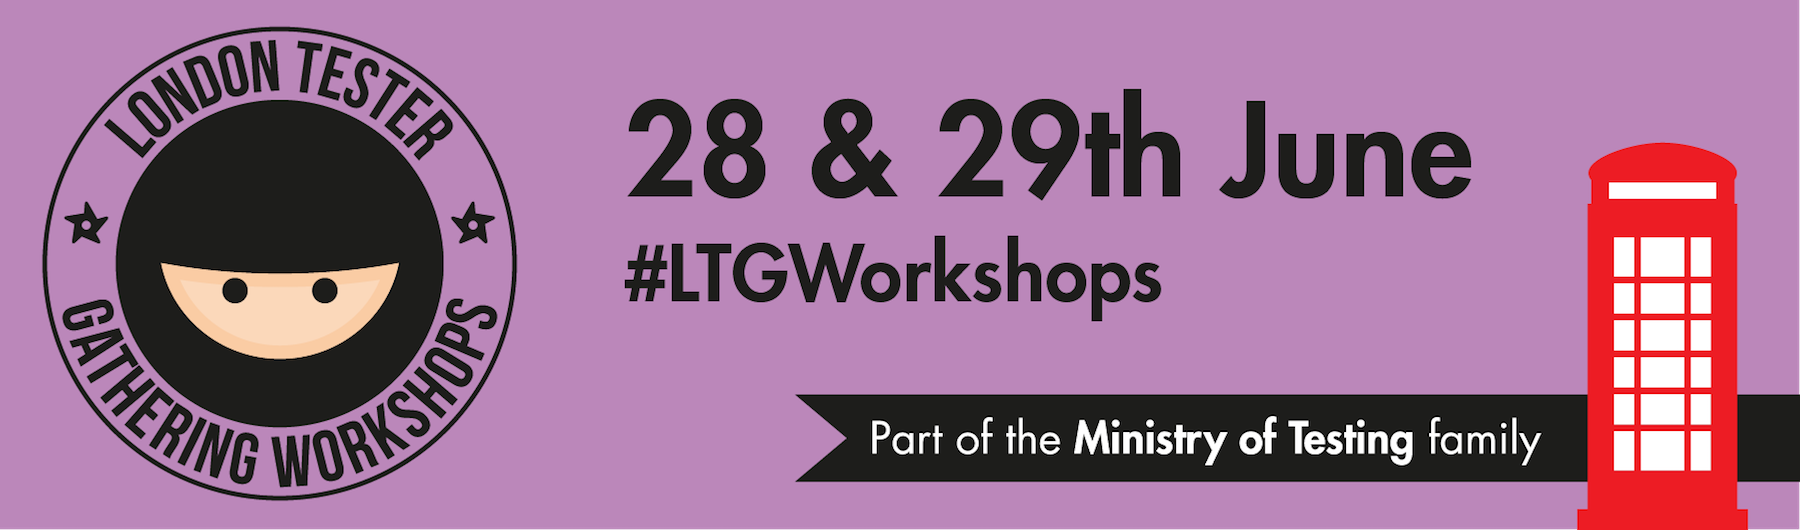 London Tester Gathering Workshops 2018